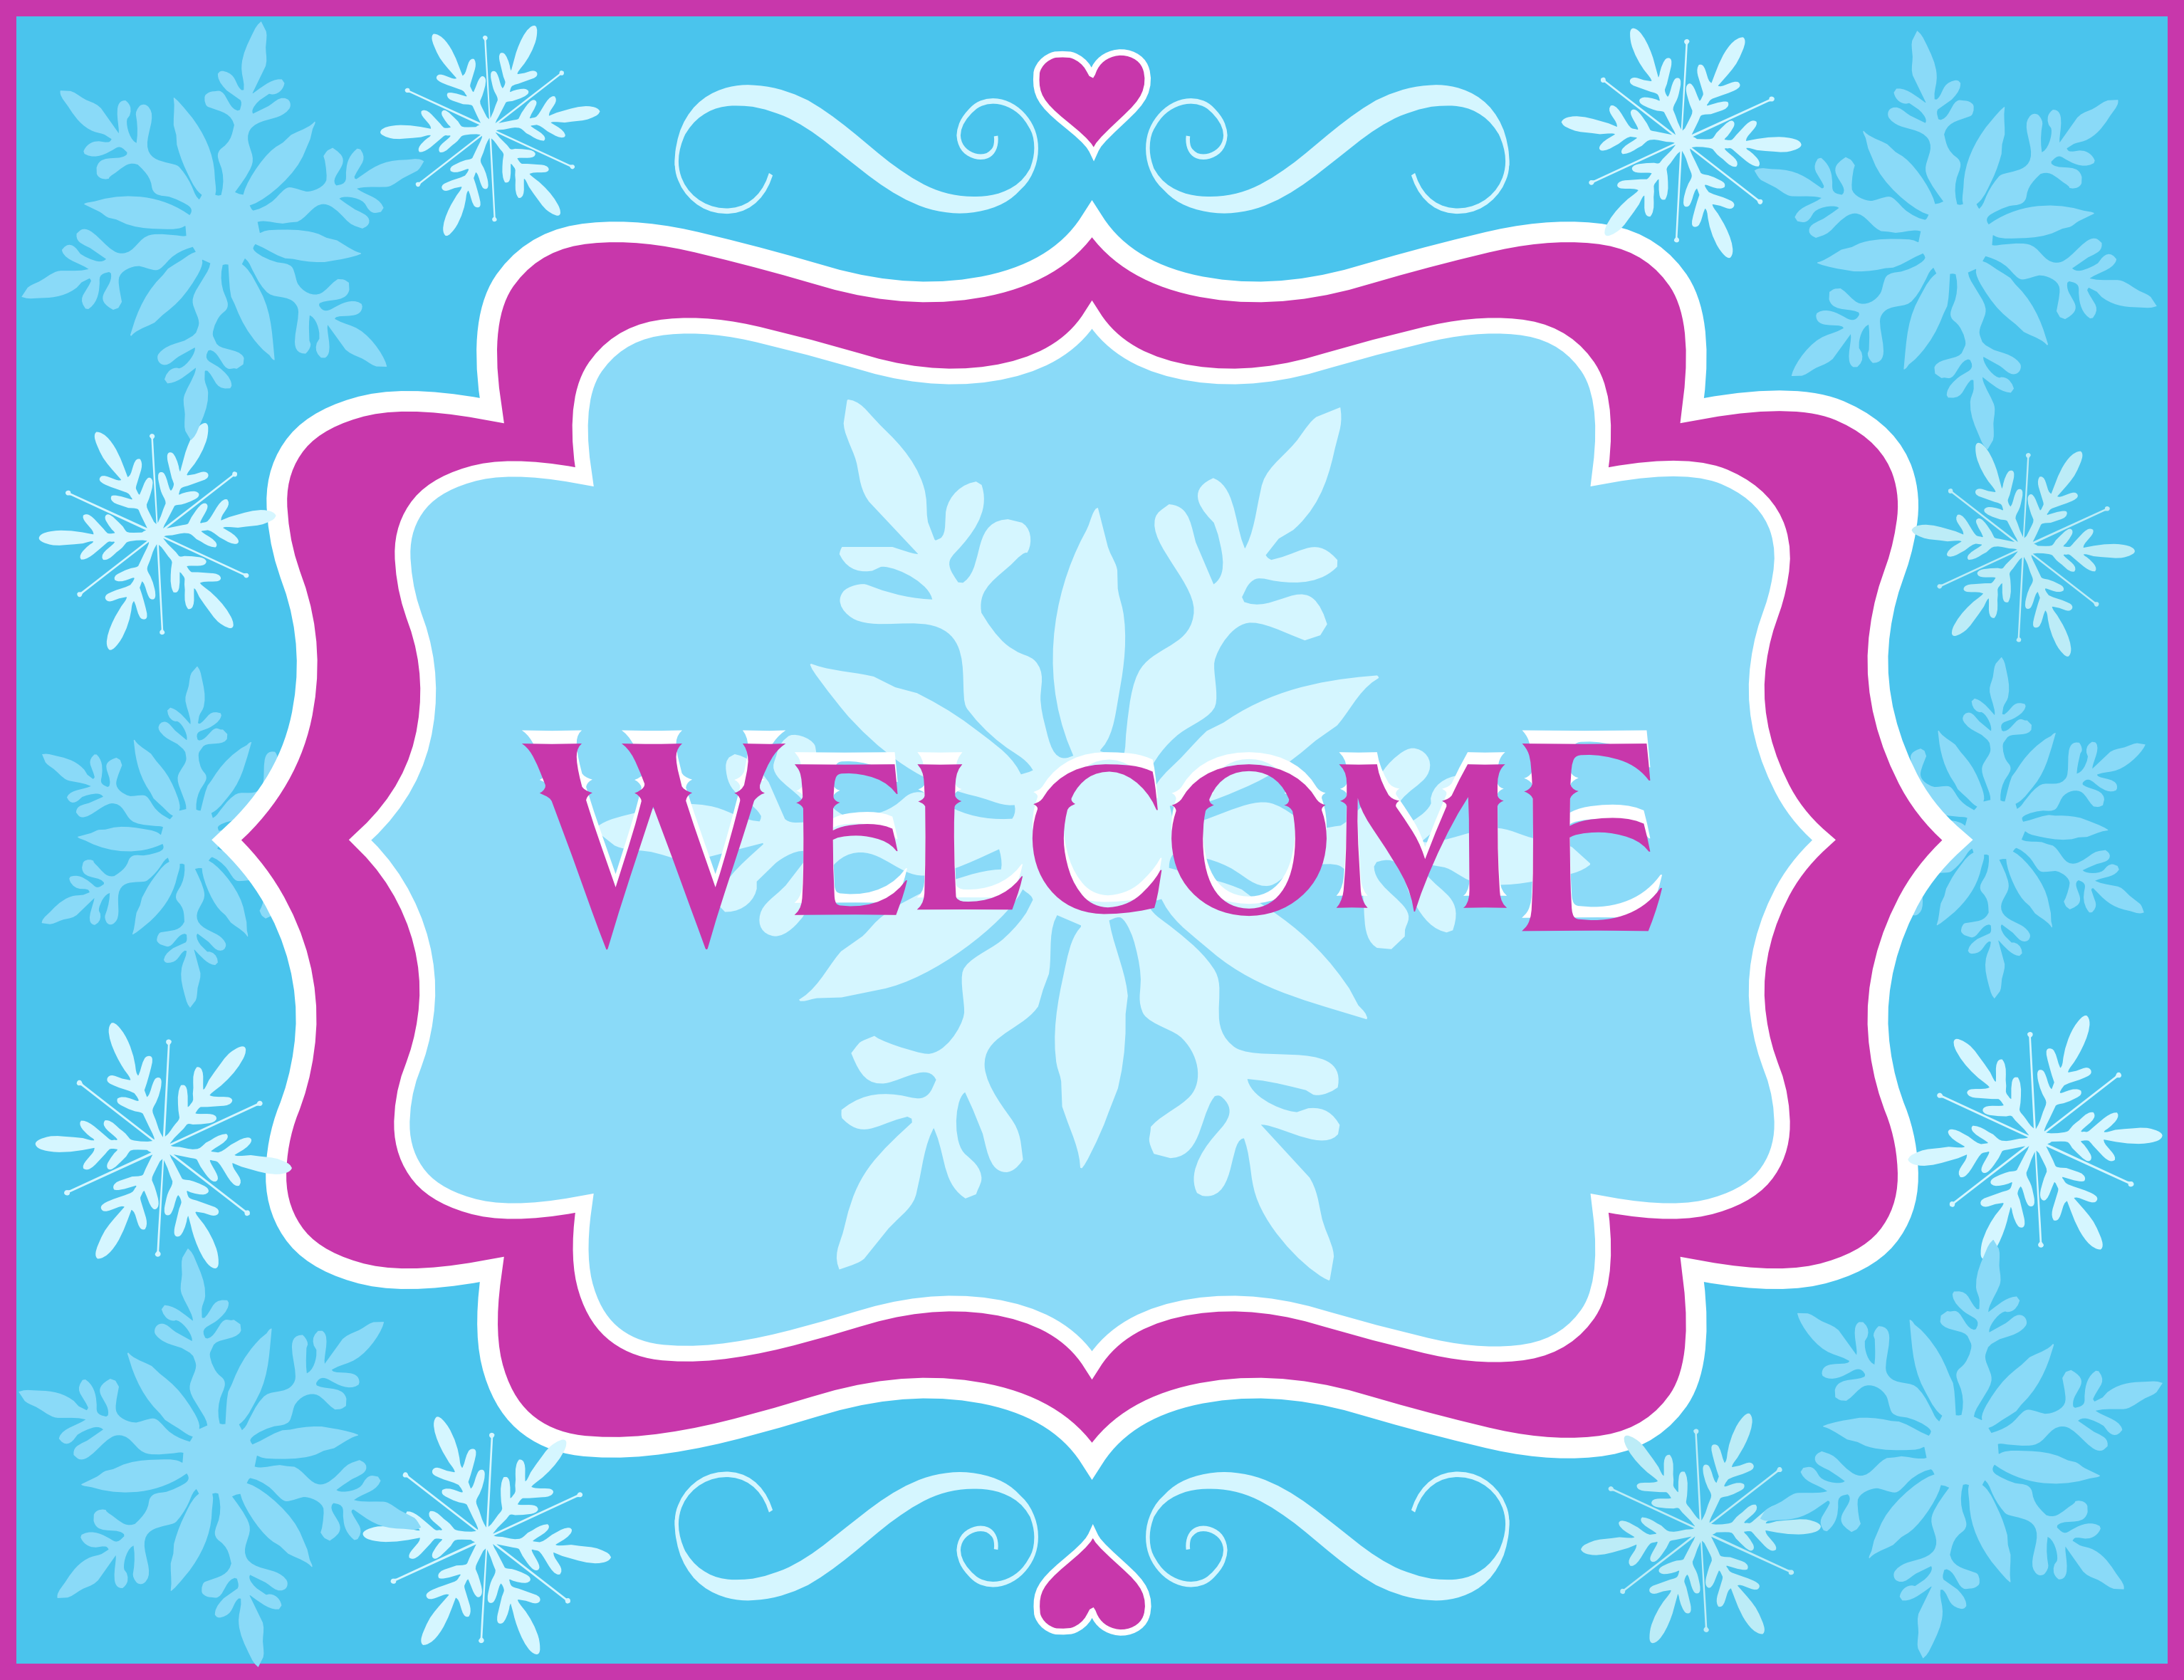 image regarding Frozen Free Printable titled No cost Frozen Social gathering Printables Capture My Social gathering